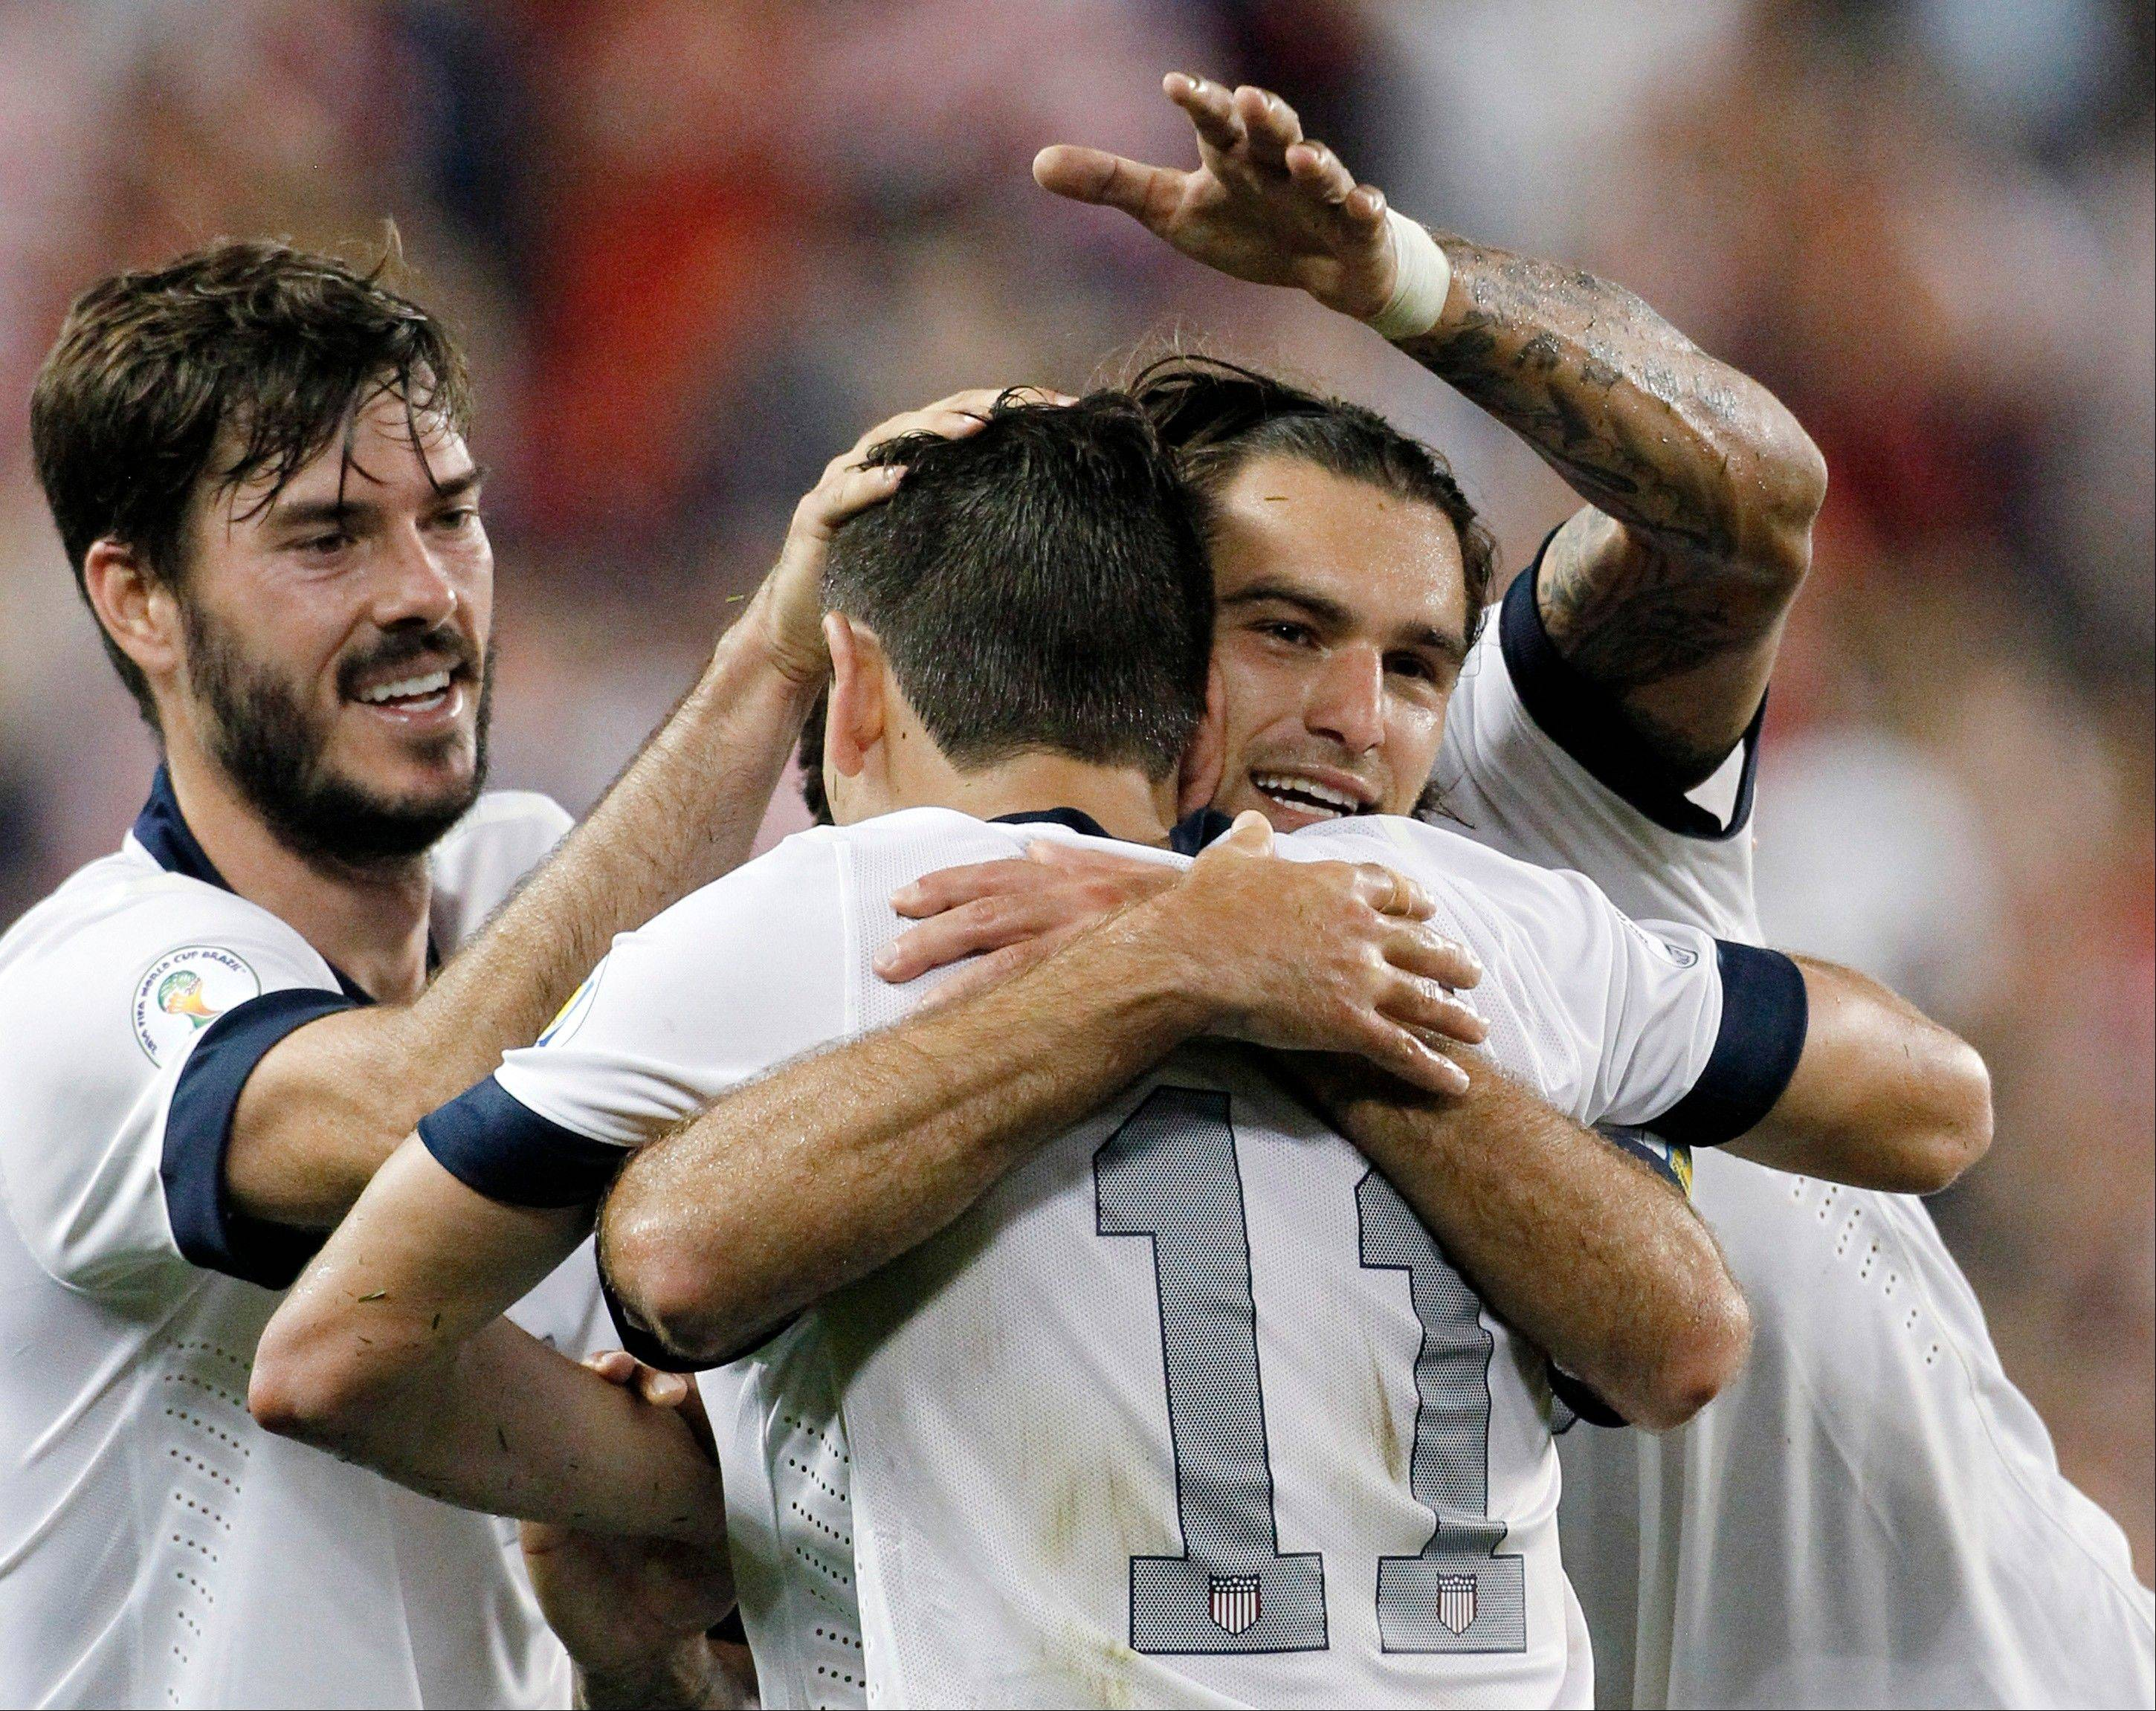 U.S. defender Brad Evans, left, midfielder Graham Zusi, center, facing camera, and midfielder Alejandro Bedoya celebrate Zusi's goal in the second half of a World Cup qualifier against Jamaica on Friday at Sporting Park in Kansas City, Kan.